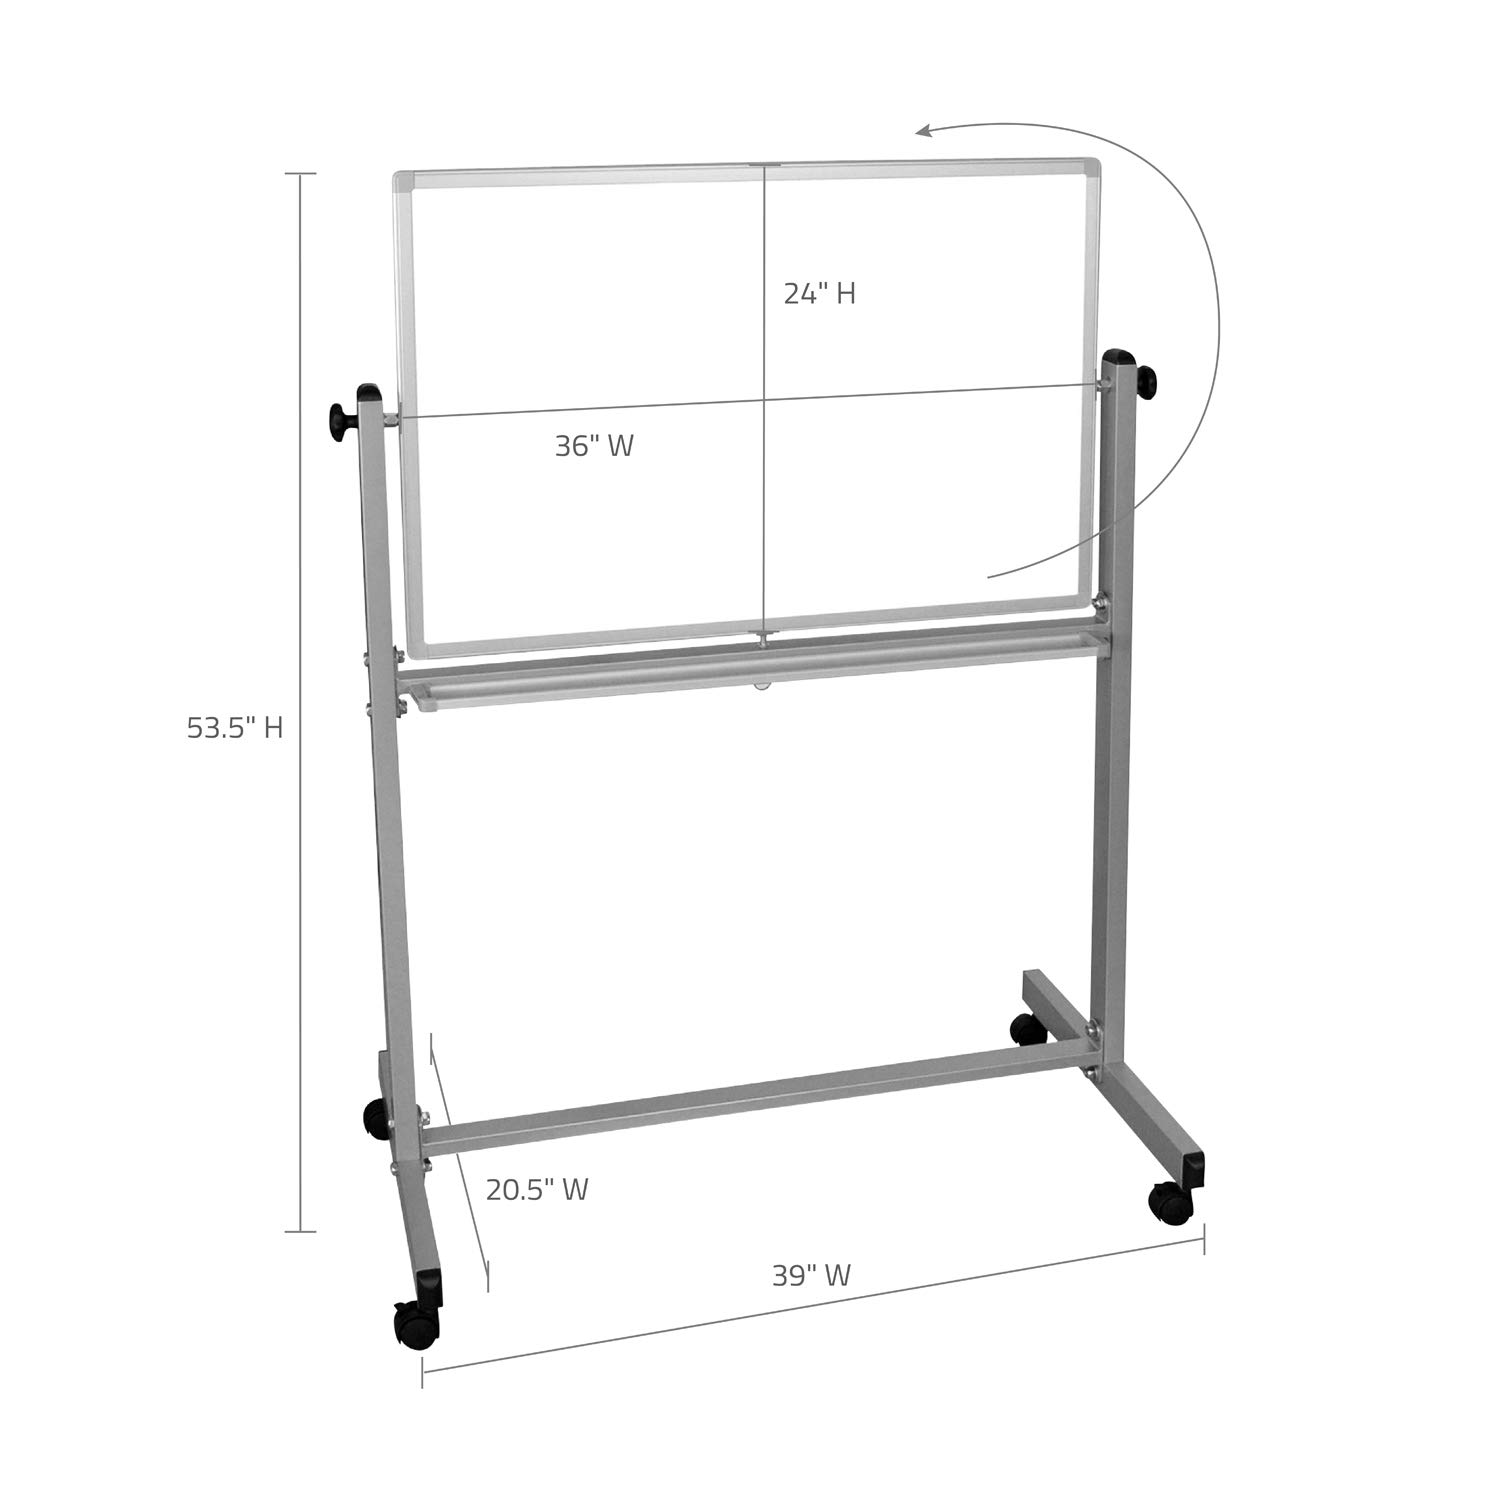 Offex Mobile Double Sided 36 X 24-Inch Reversible Adjustable Magnetic Whiteboard Easel with Chrome Frame 4 Casters OF-MB3624WW